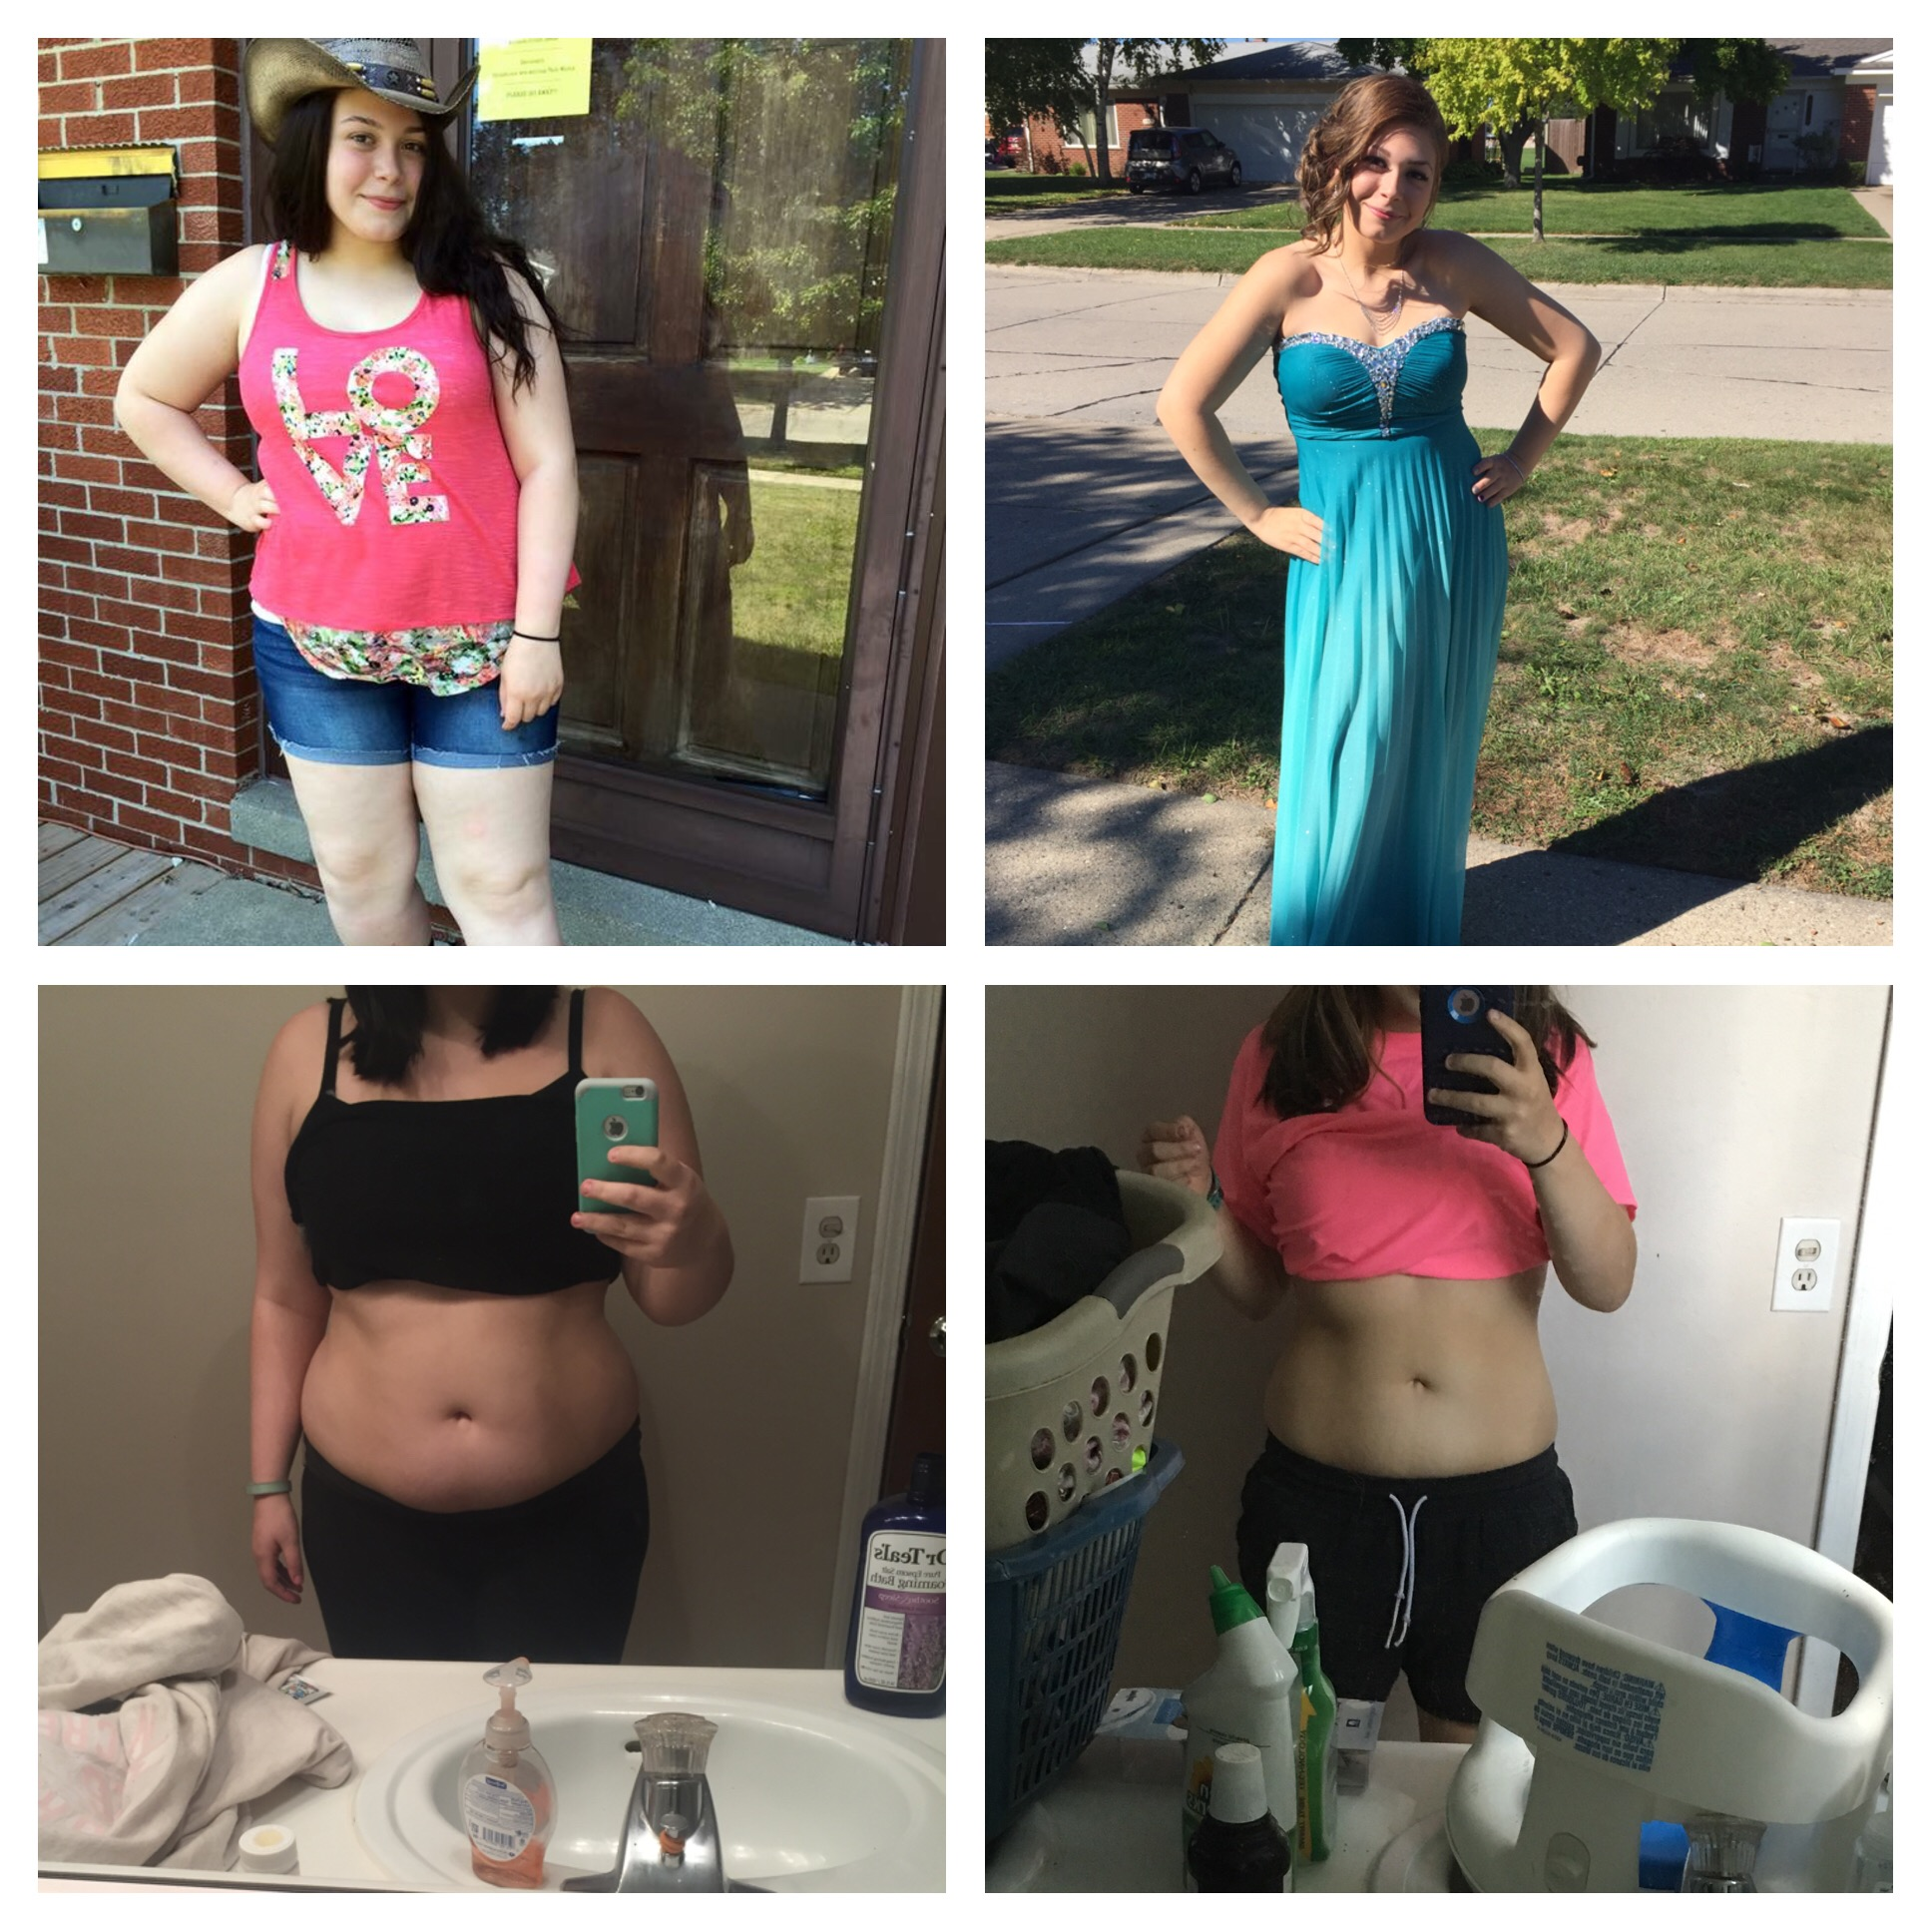 Great success story! Read before and after fitness transformation stories from women and men who hit weight loss goals and got THAT BODY with training and meal prep. Find inspiration, motivation, and workout tips | 60 Pounds Lost: Losing weight as a teenager in high school